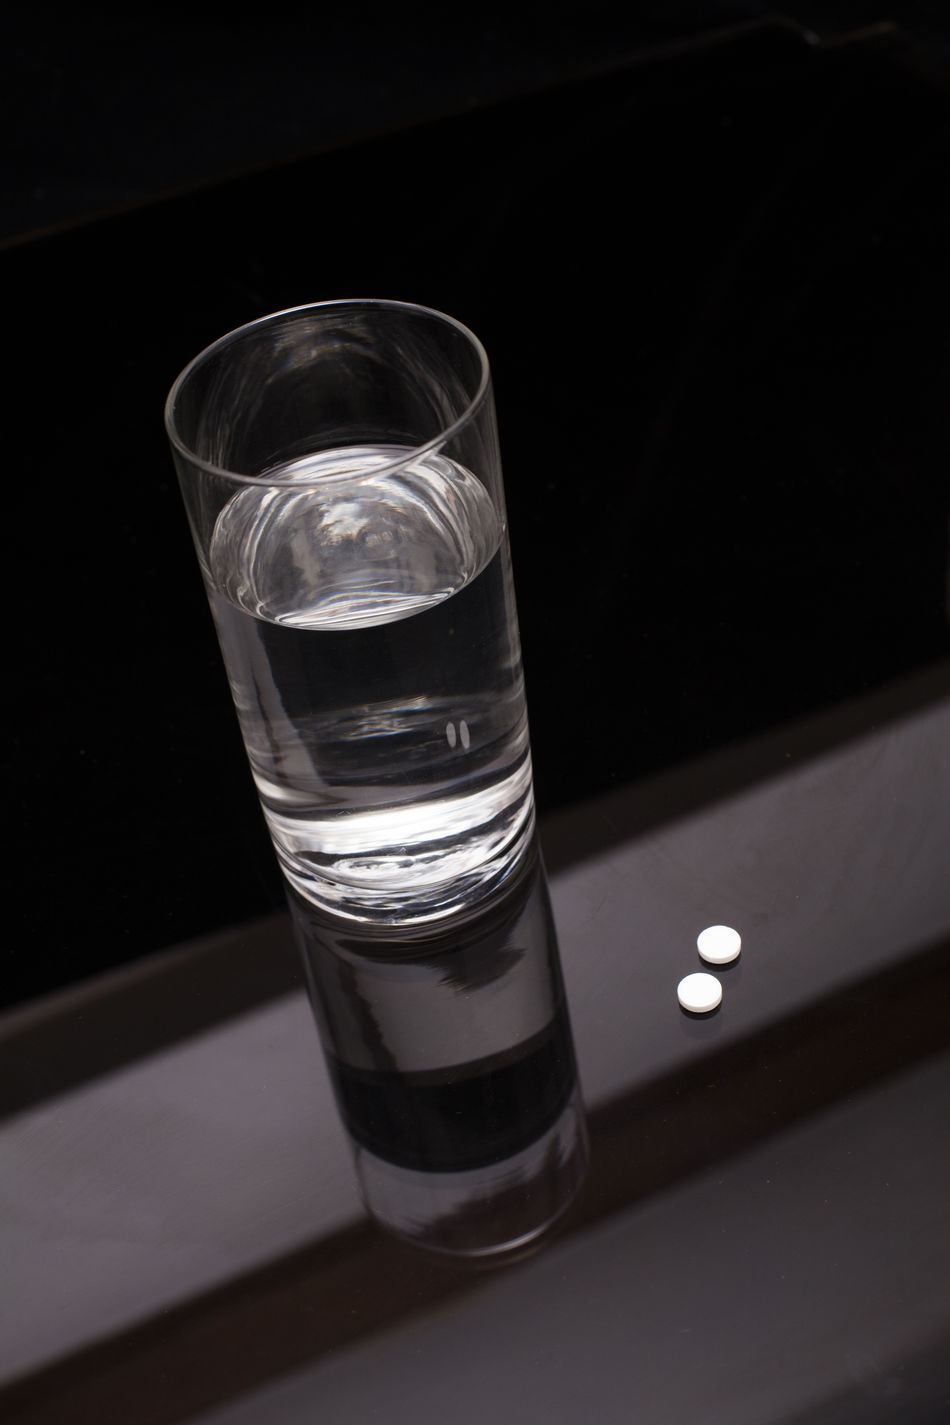 Agua Black & White Black And White Black Background Depession Drinking Glass Glass Of Water Glass Of Water On Table Insomnia No People Pain Killer Pain Killers Pill Pills Vaso De Agua Water Water Reflections